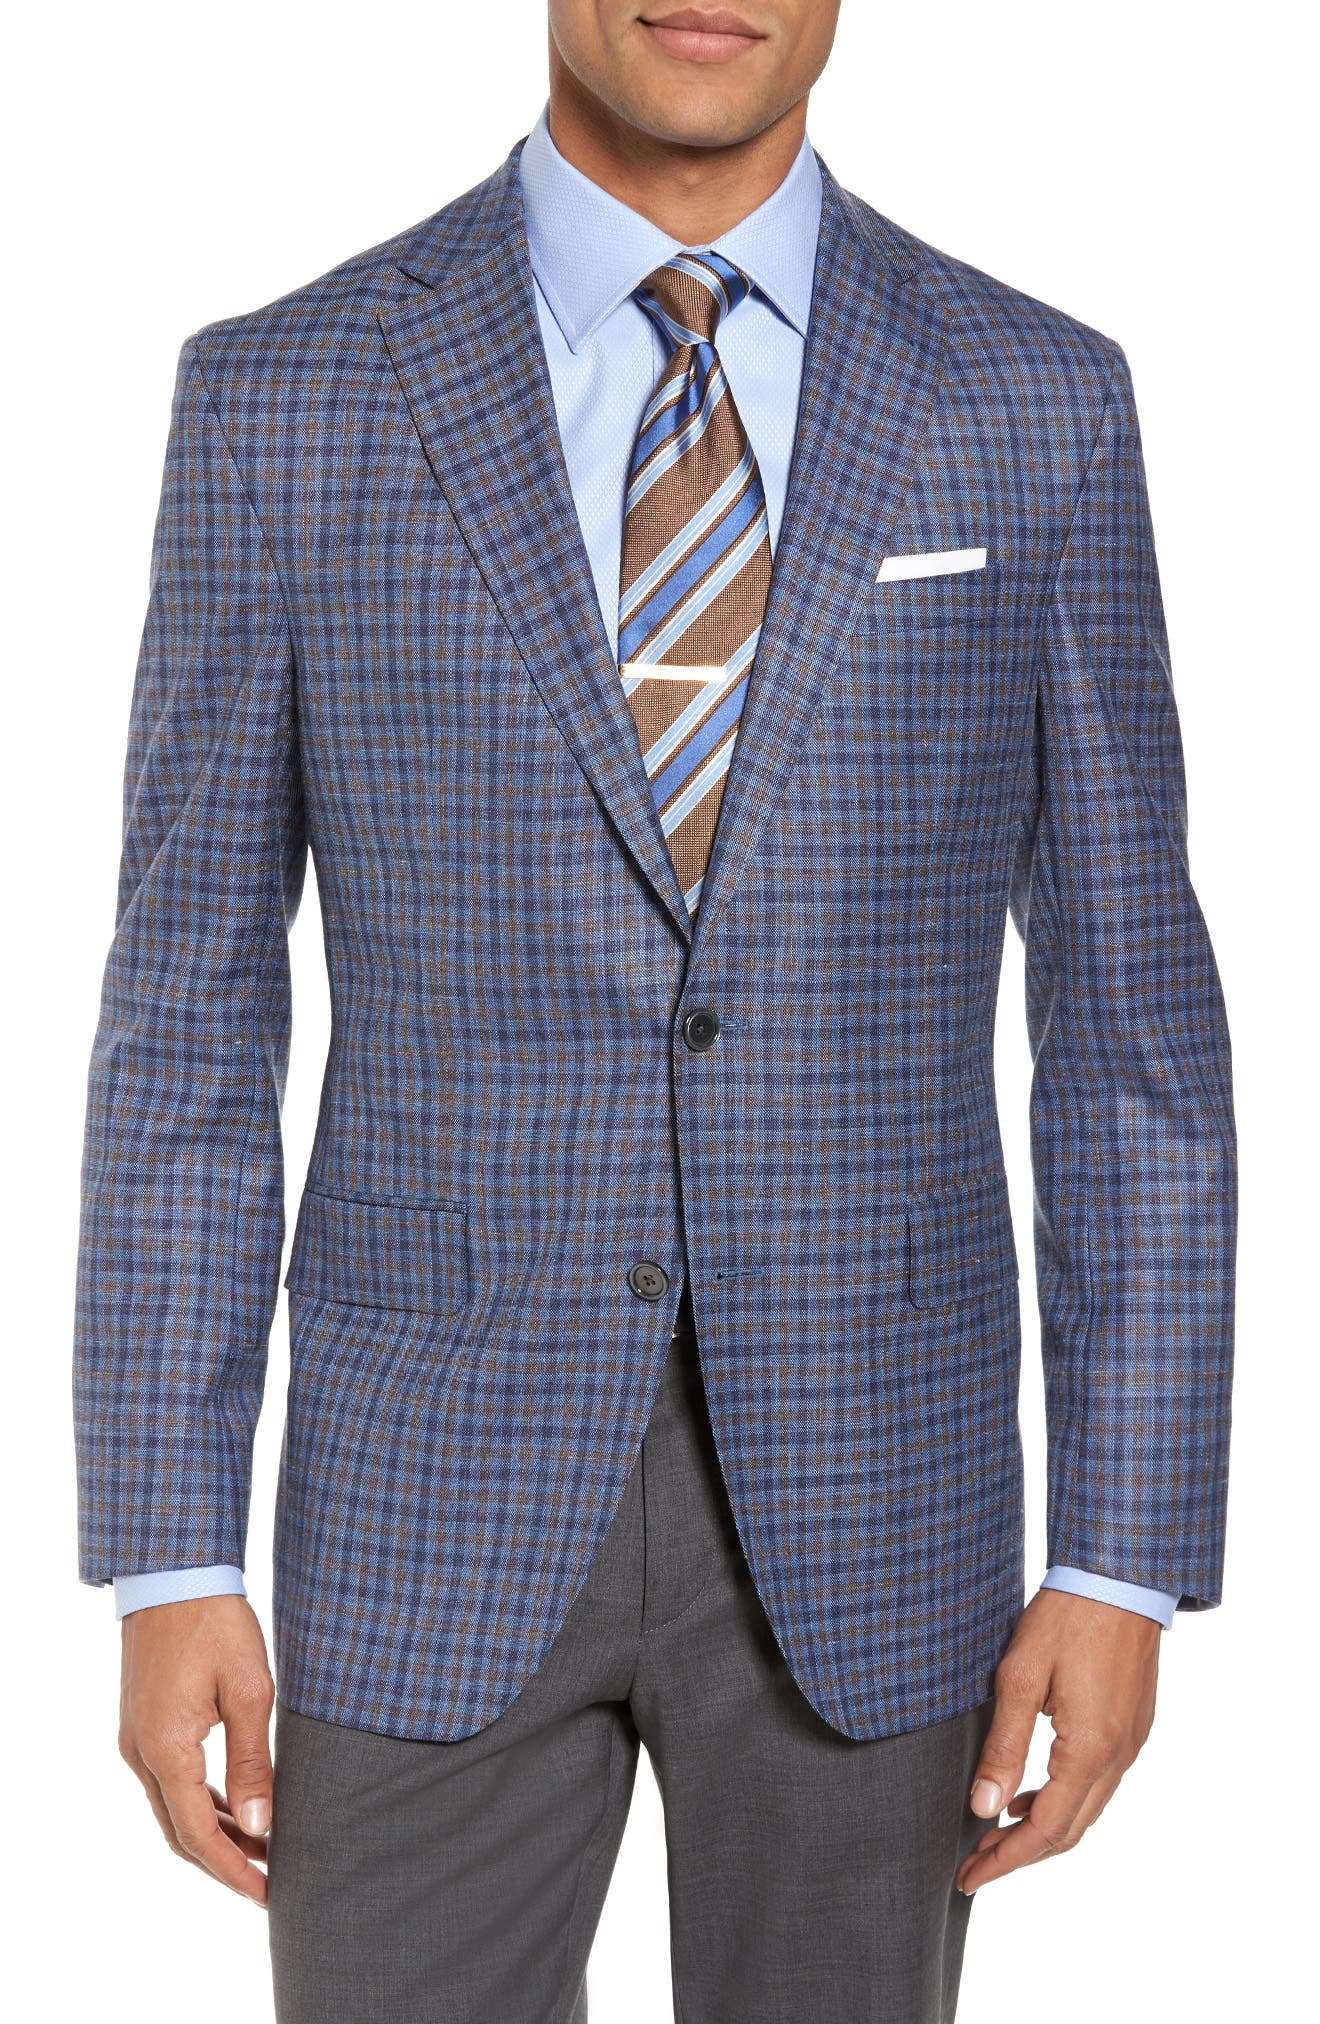 Alternate Image 1 Selected - David Donahue Ashton Classic Fit Stretch Check Wool Blend Sport Coat